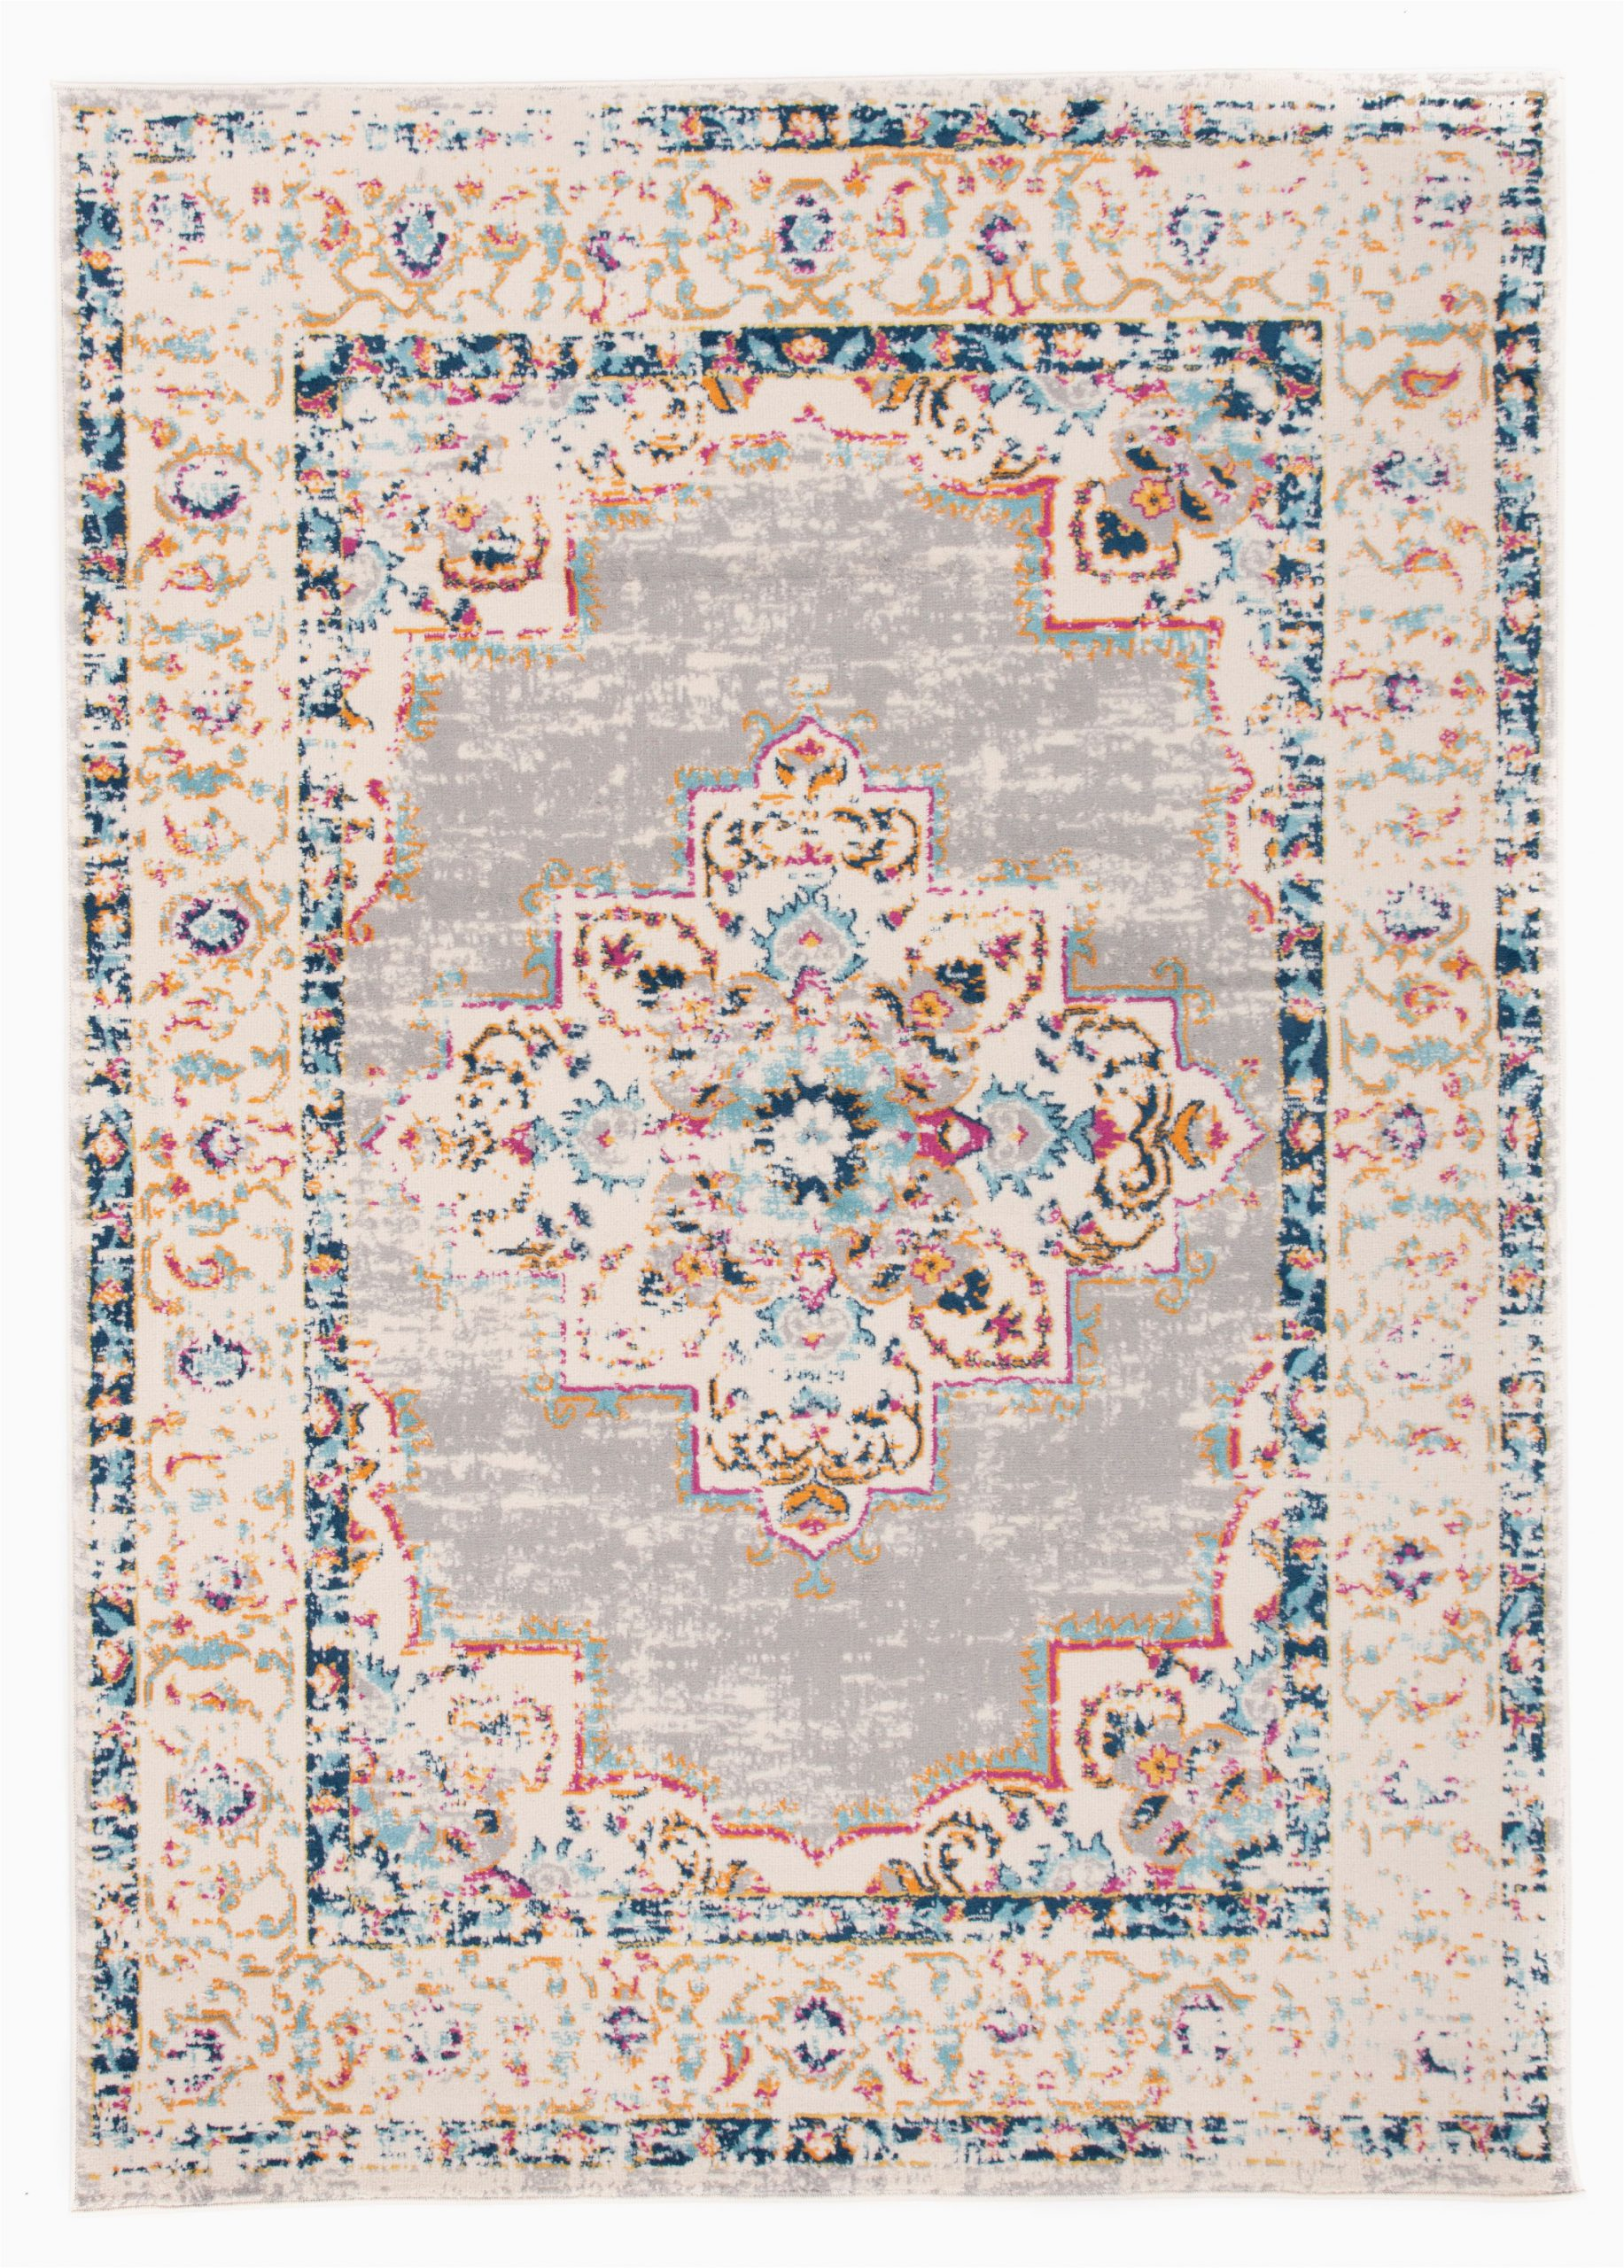 5 by 7 area Rugs at Walmart Bohemian Medallion Distressed Design area Rug 5 X 7 Gray